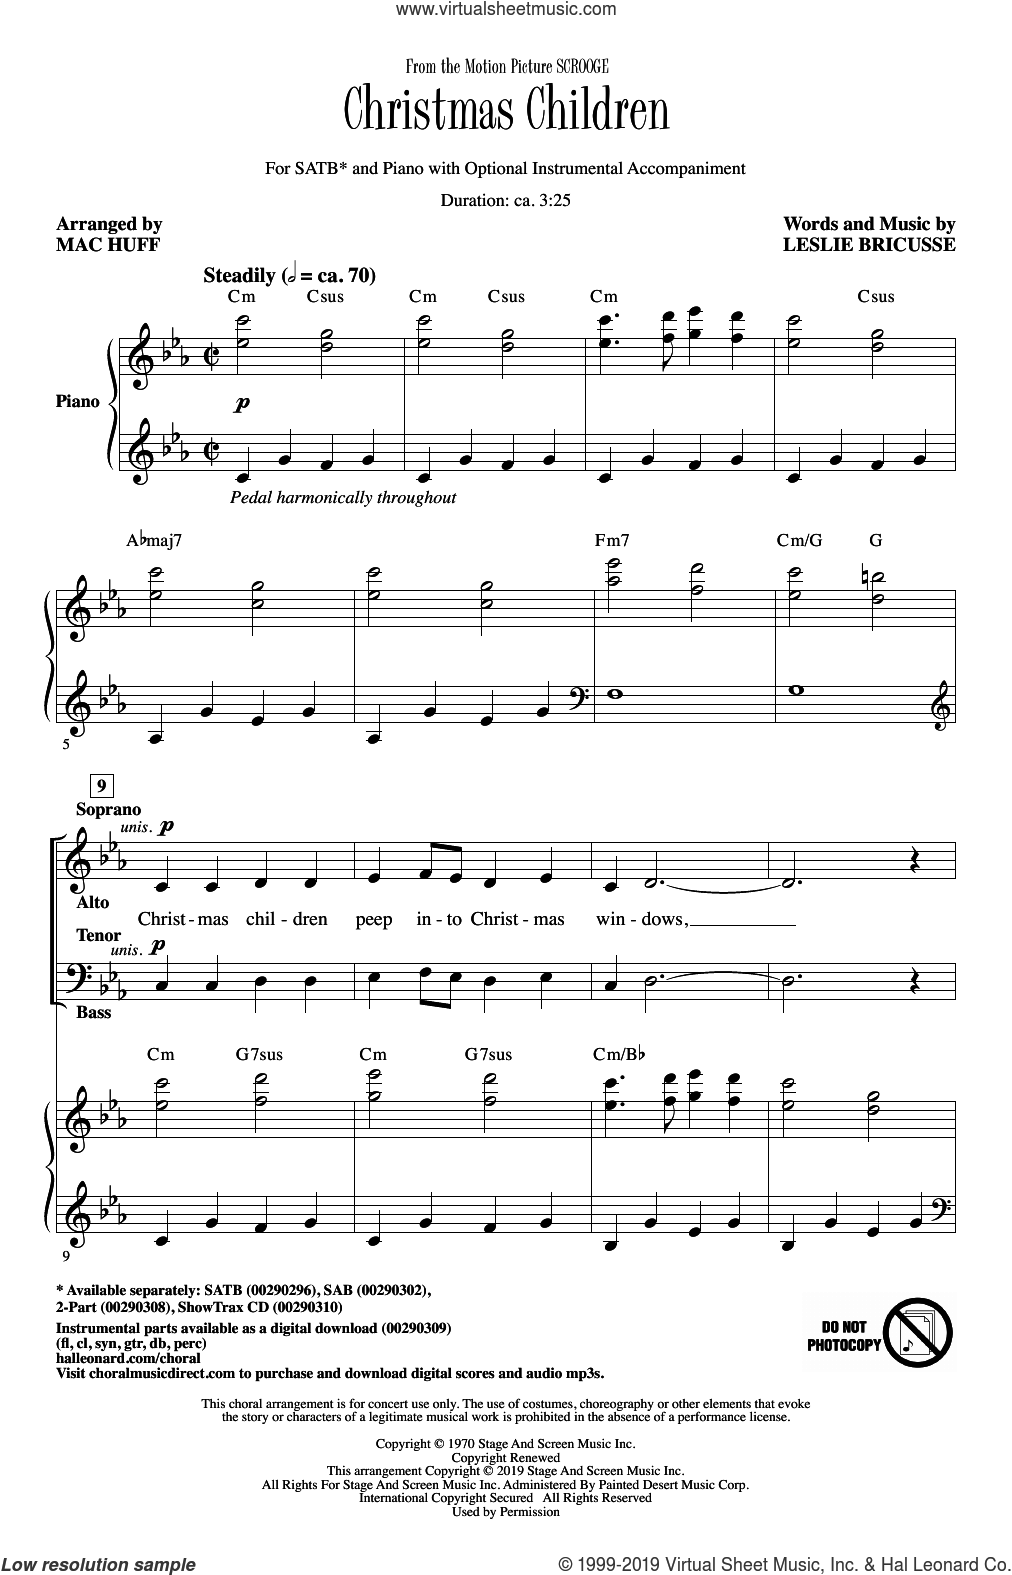 Christmas Children (from Scrooge) (arr. Mac Huff) sheet music for choir (SATB: soprano, alto, tenor, bass) by Leslie Bricusse and Mac Huff, intermediate skill level